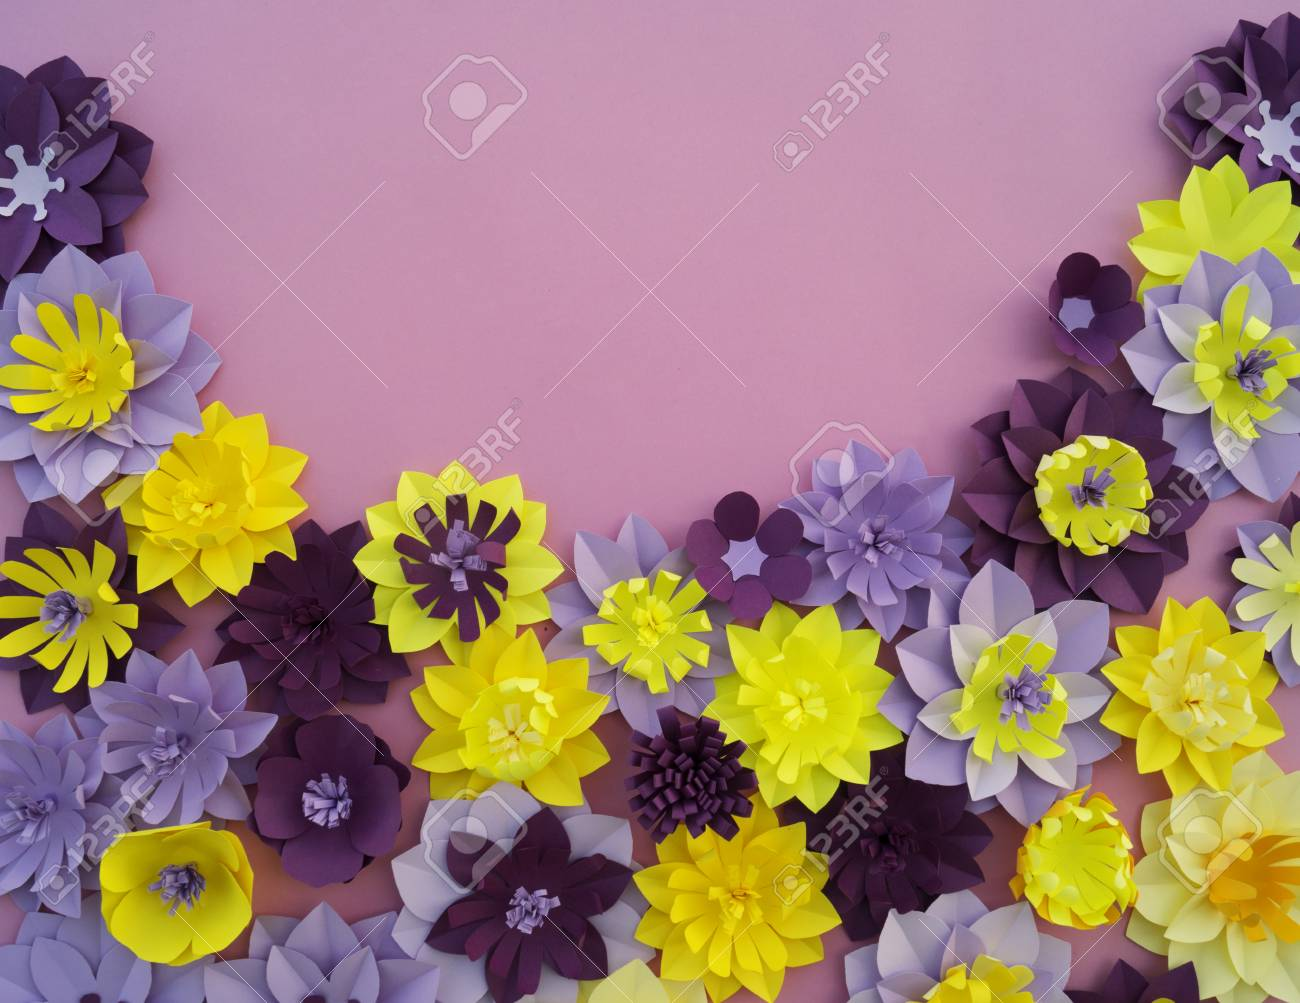 Paper Craft Flower Decoration Concept Flowers And Leaves Made